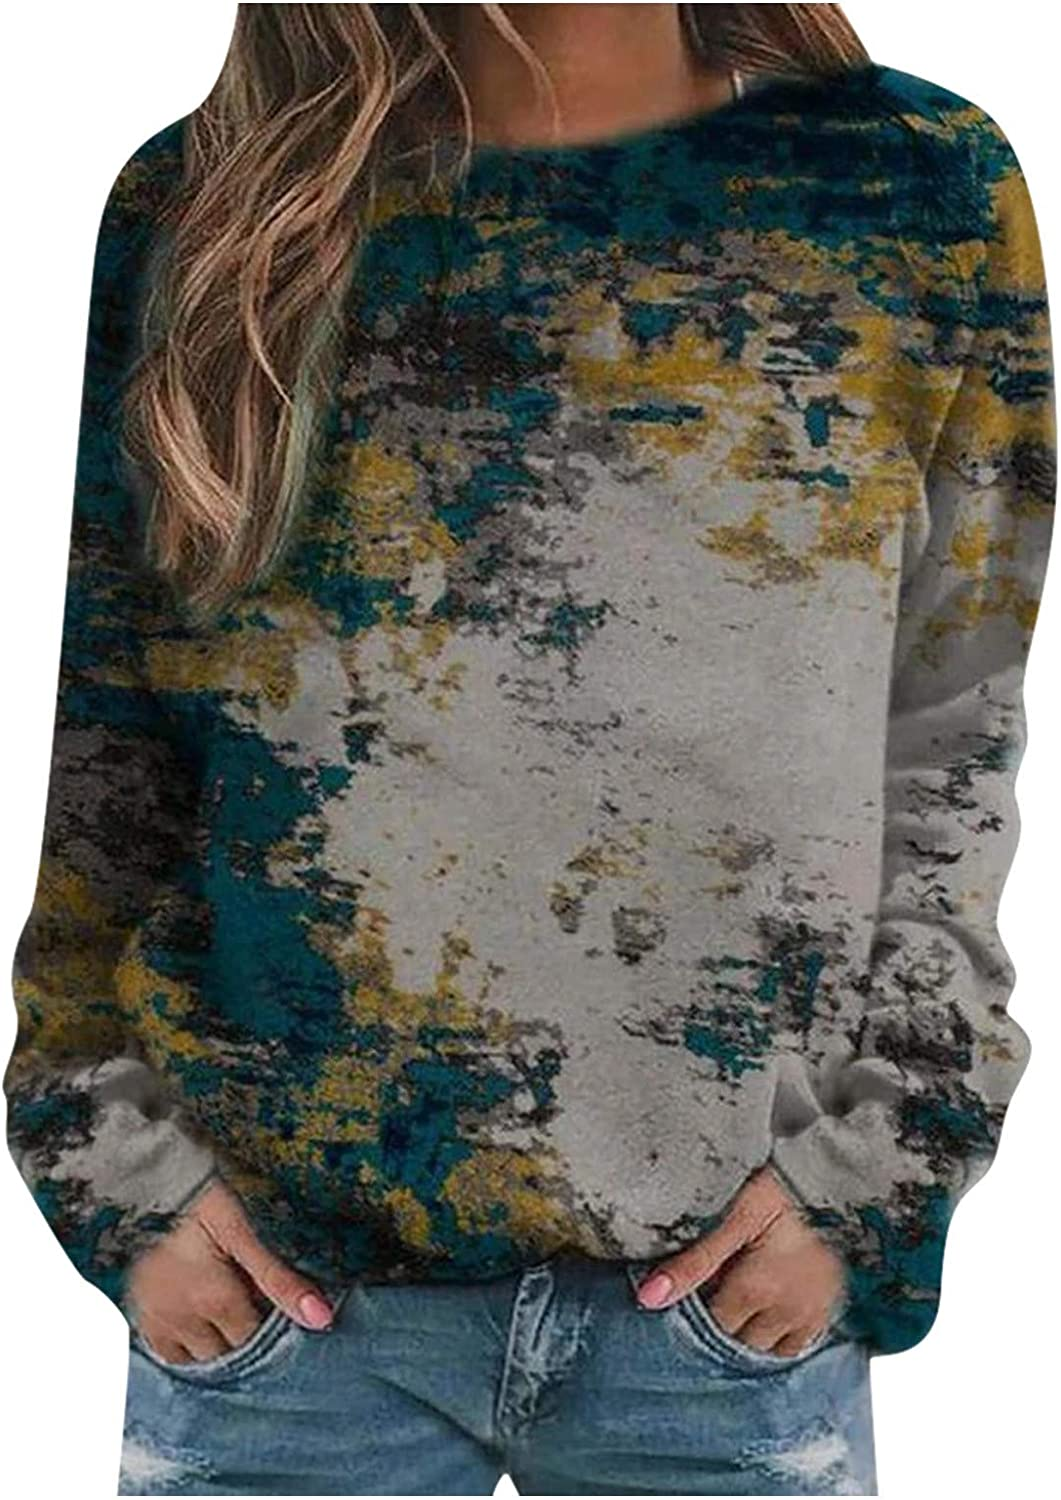 Sweatshirts for Women,Women's Long Sleeve Round Neck Casual Colorful Print Shirt Blouse Sweatshirt Pullover Top